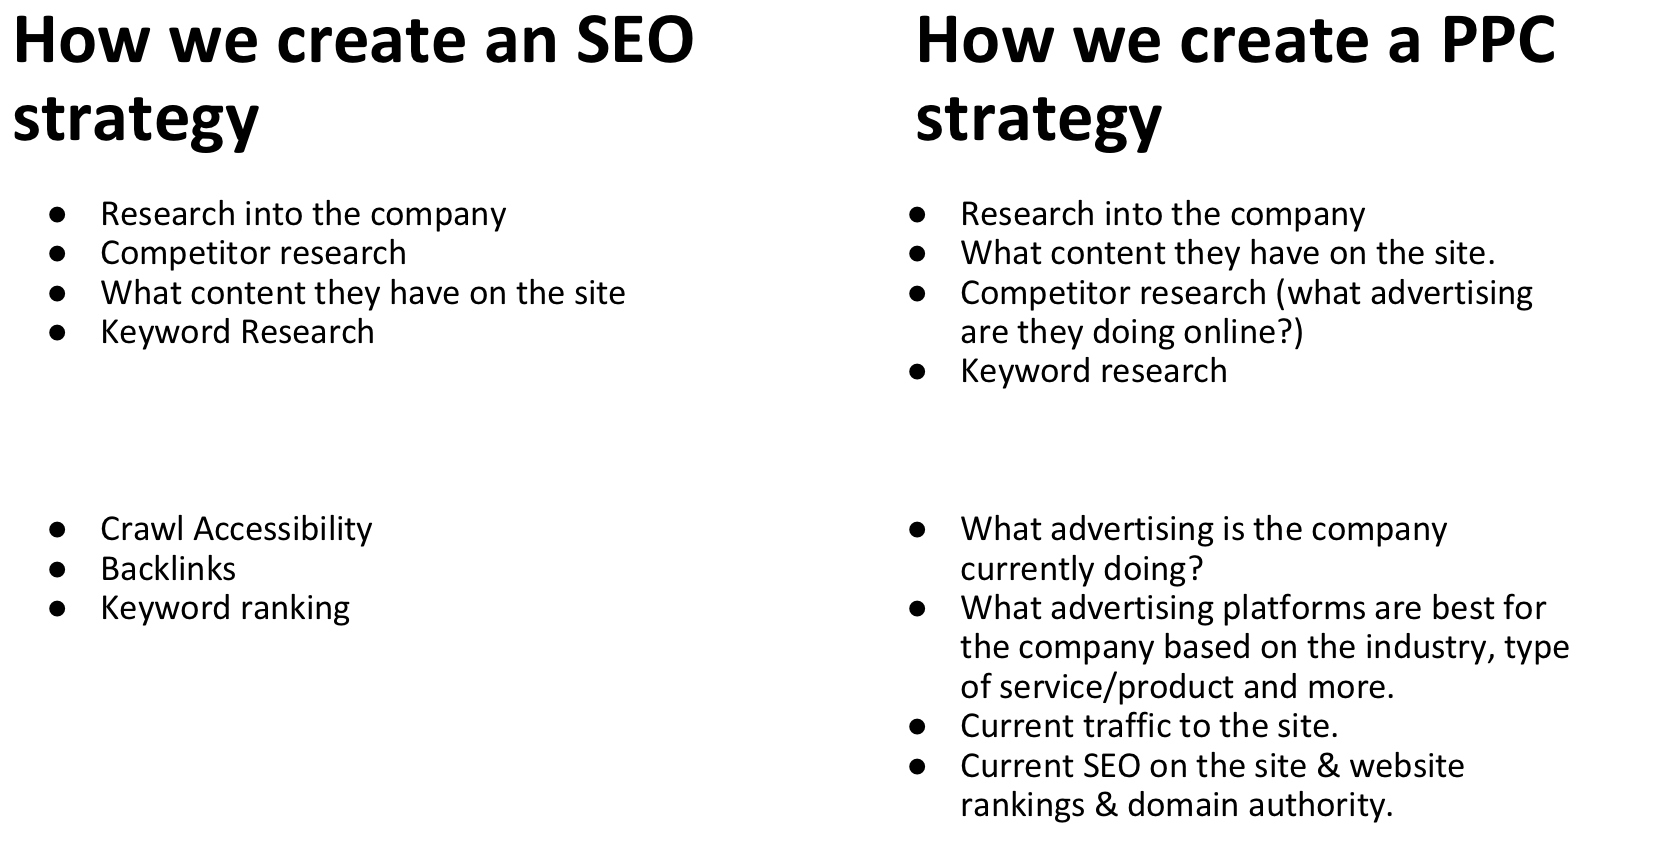 similarities between seo and ppc strategies